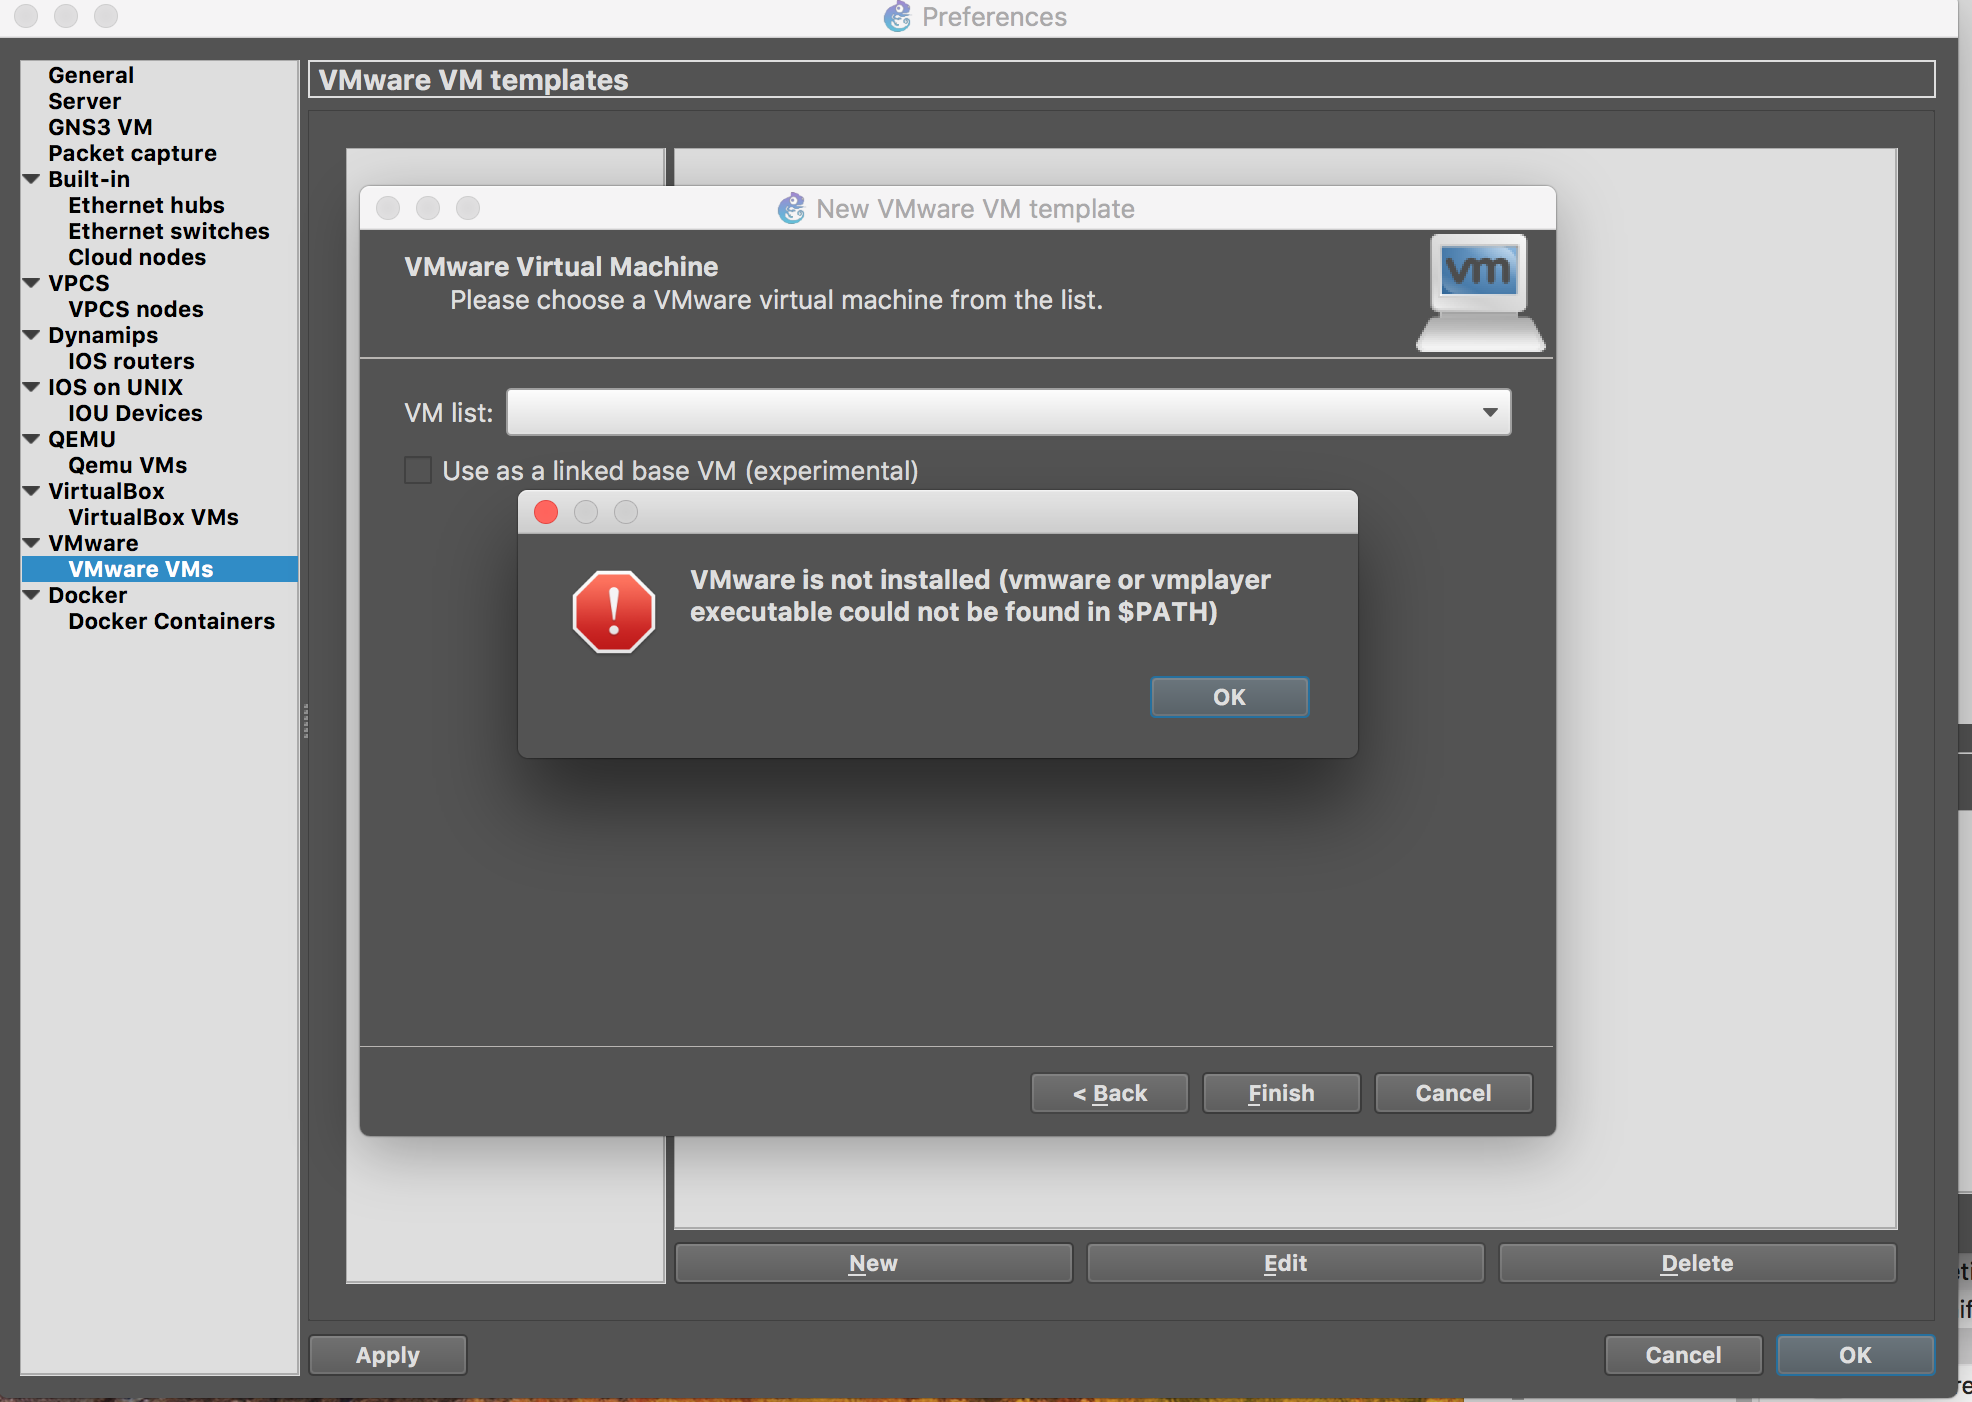 GNS3 2 1 on OSX - VMware executable path not found in $PATH